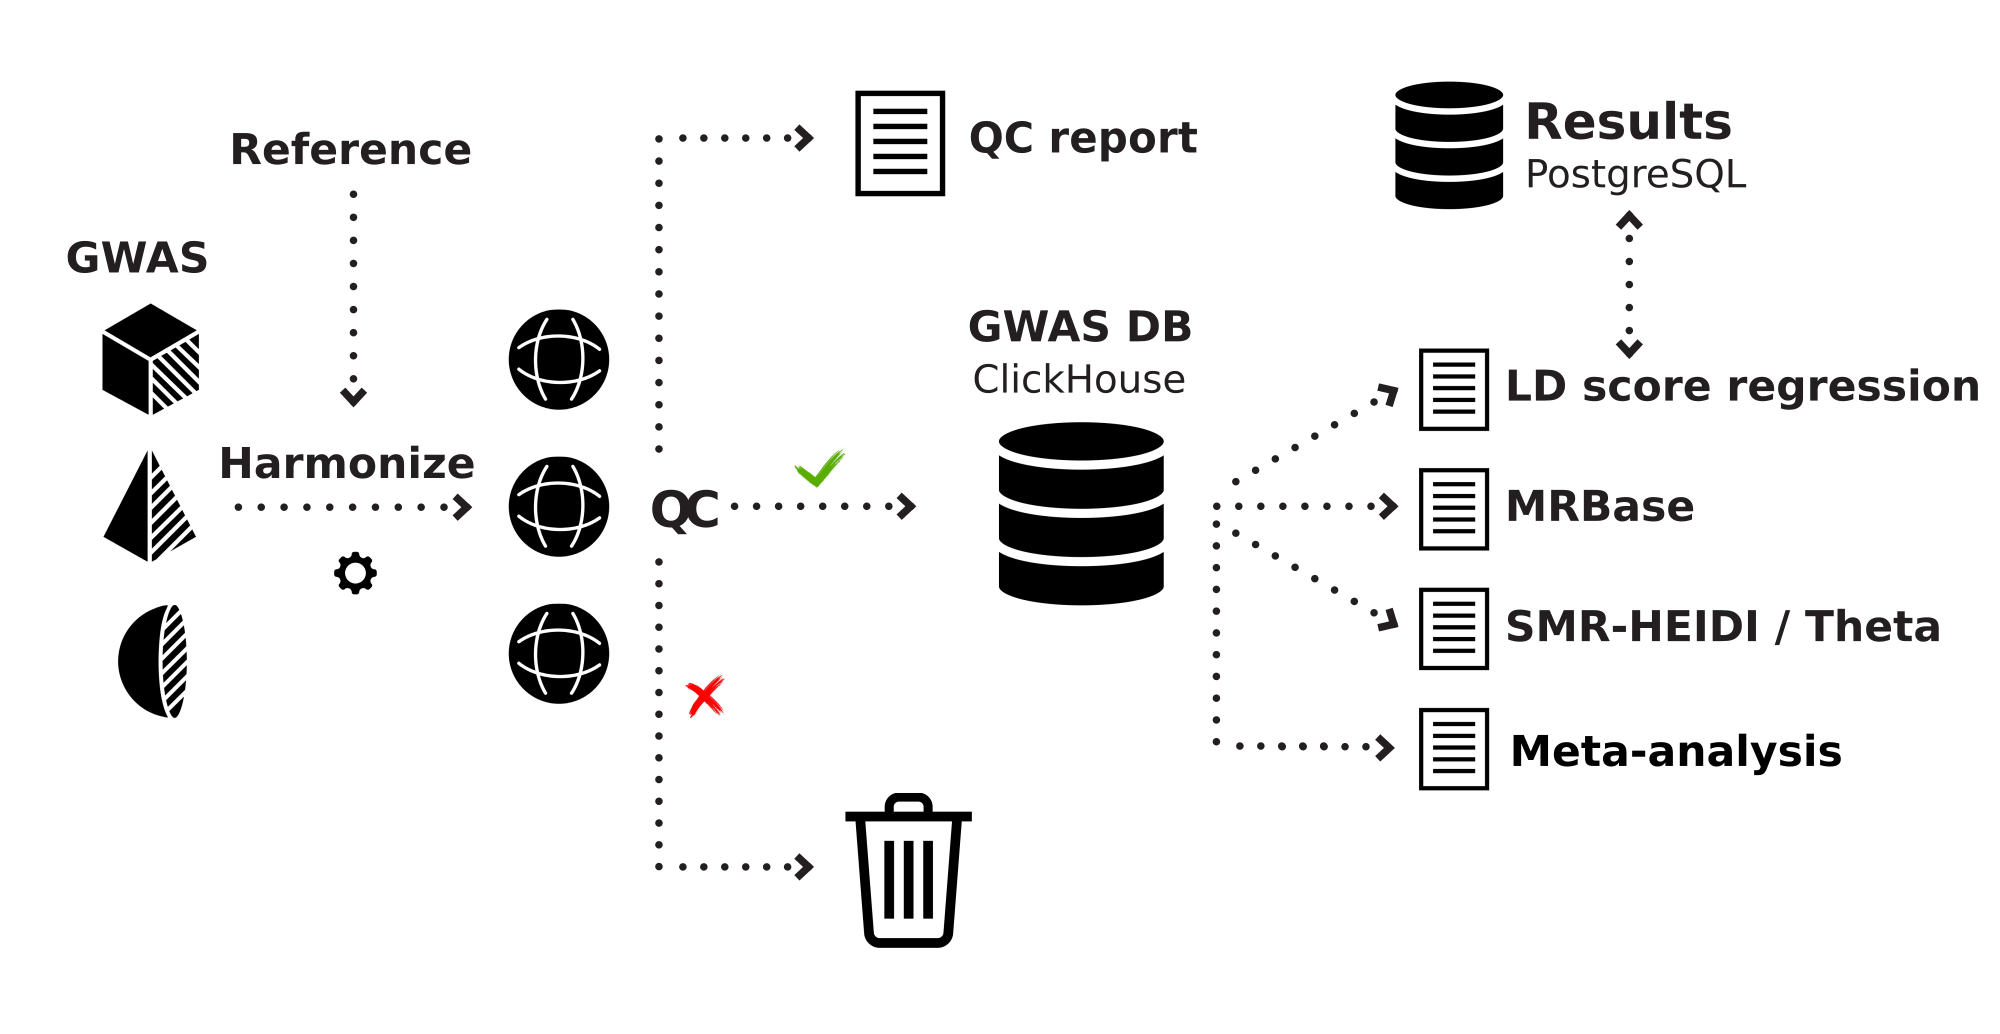 Schematic overview of the GWAS-MAP architecture